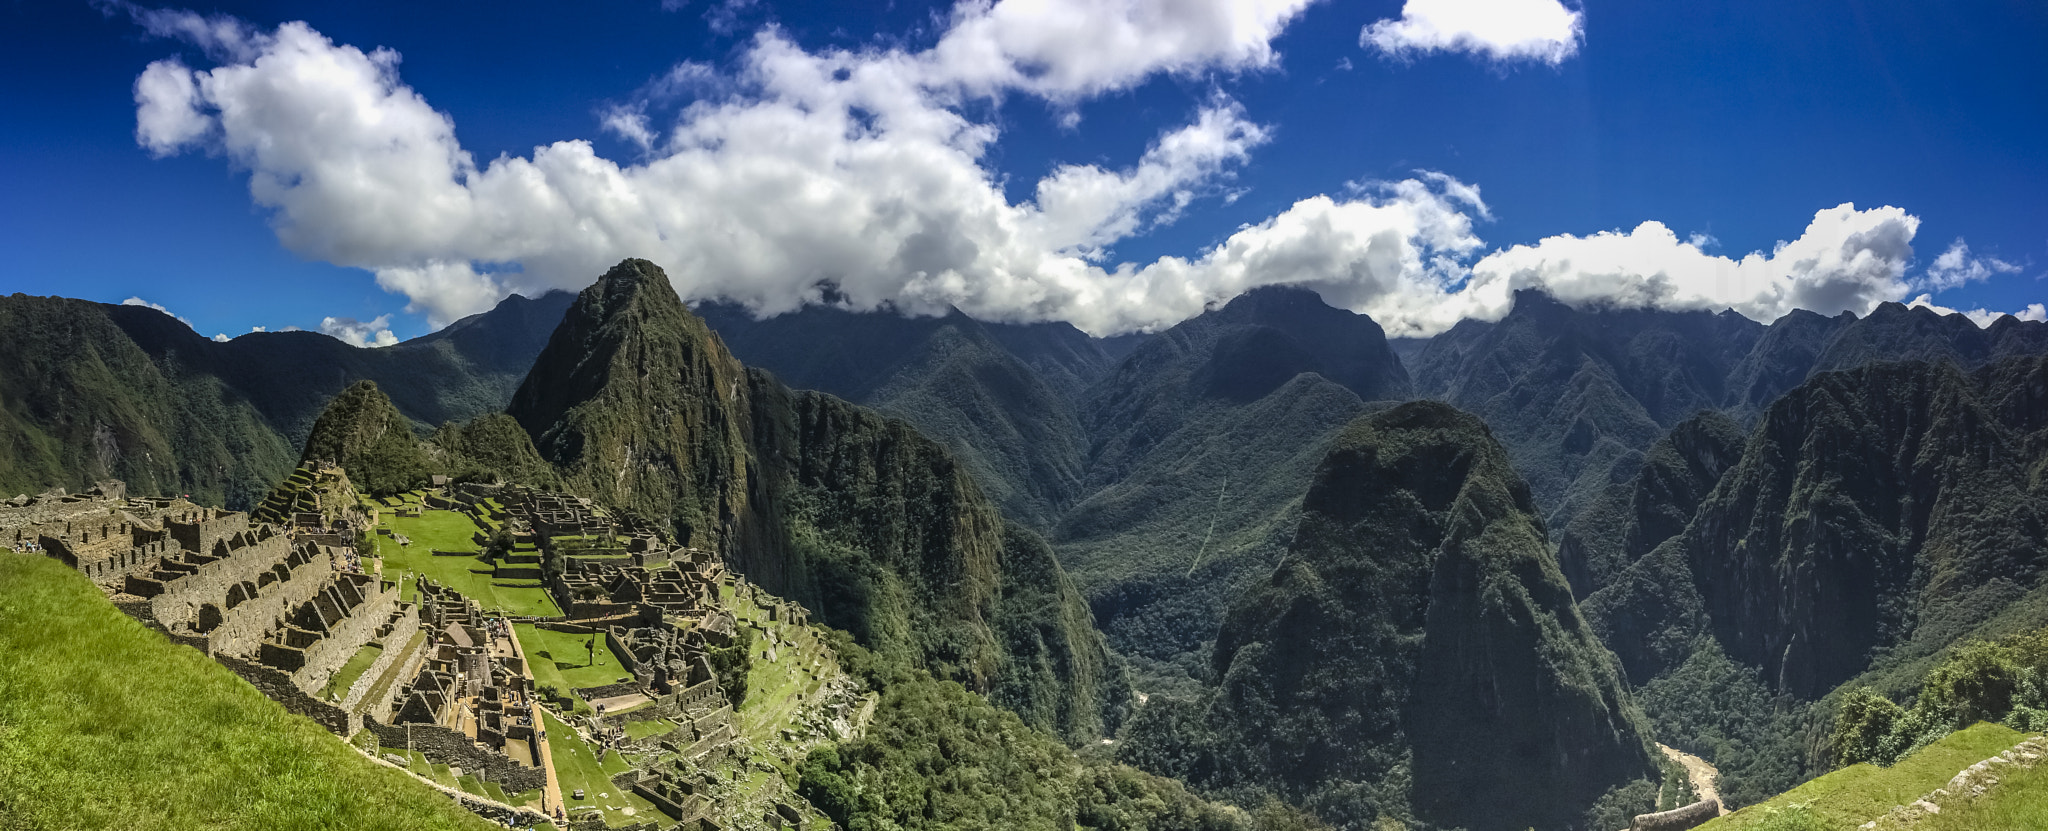 Panorama of the Lost City of Incas